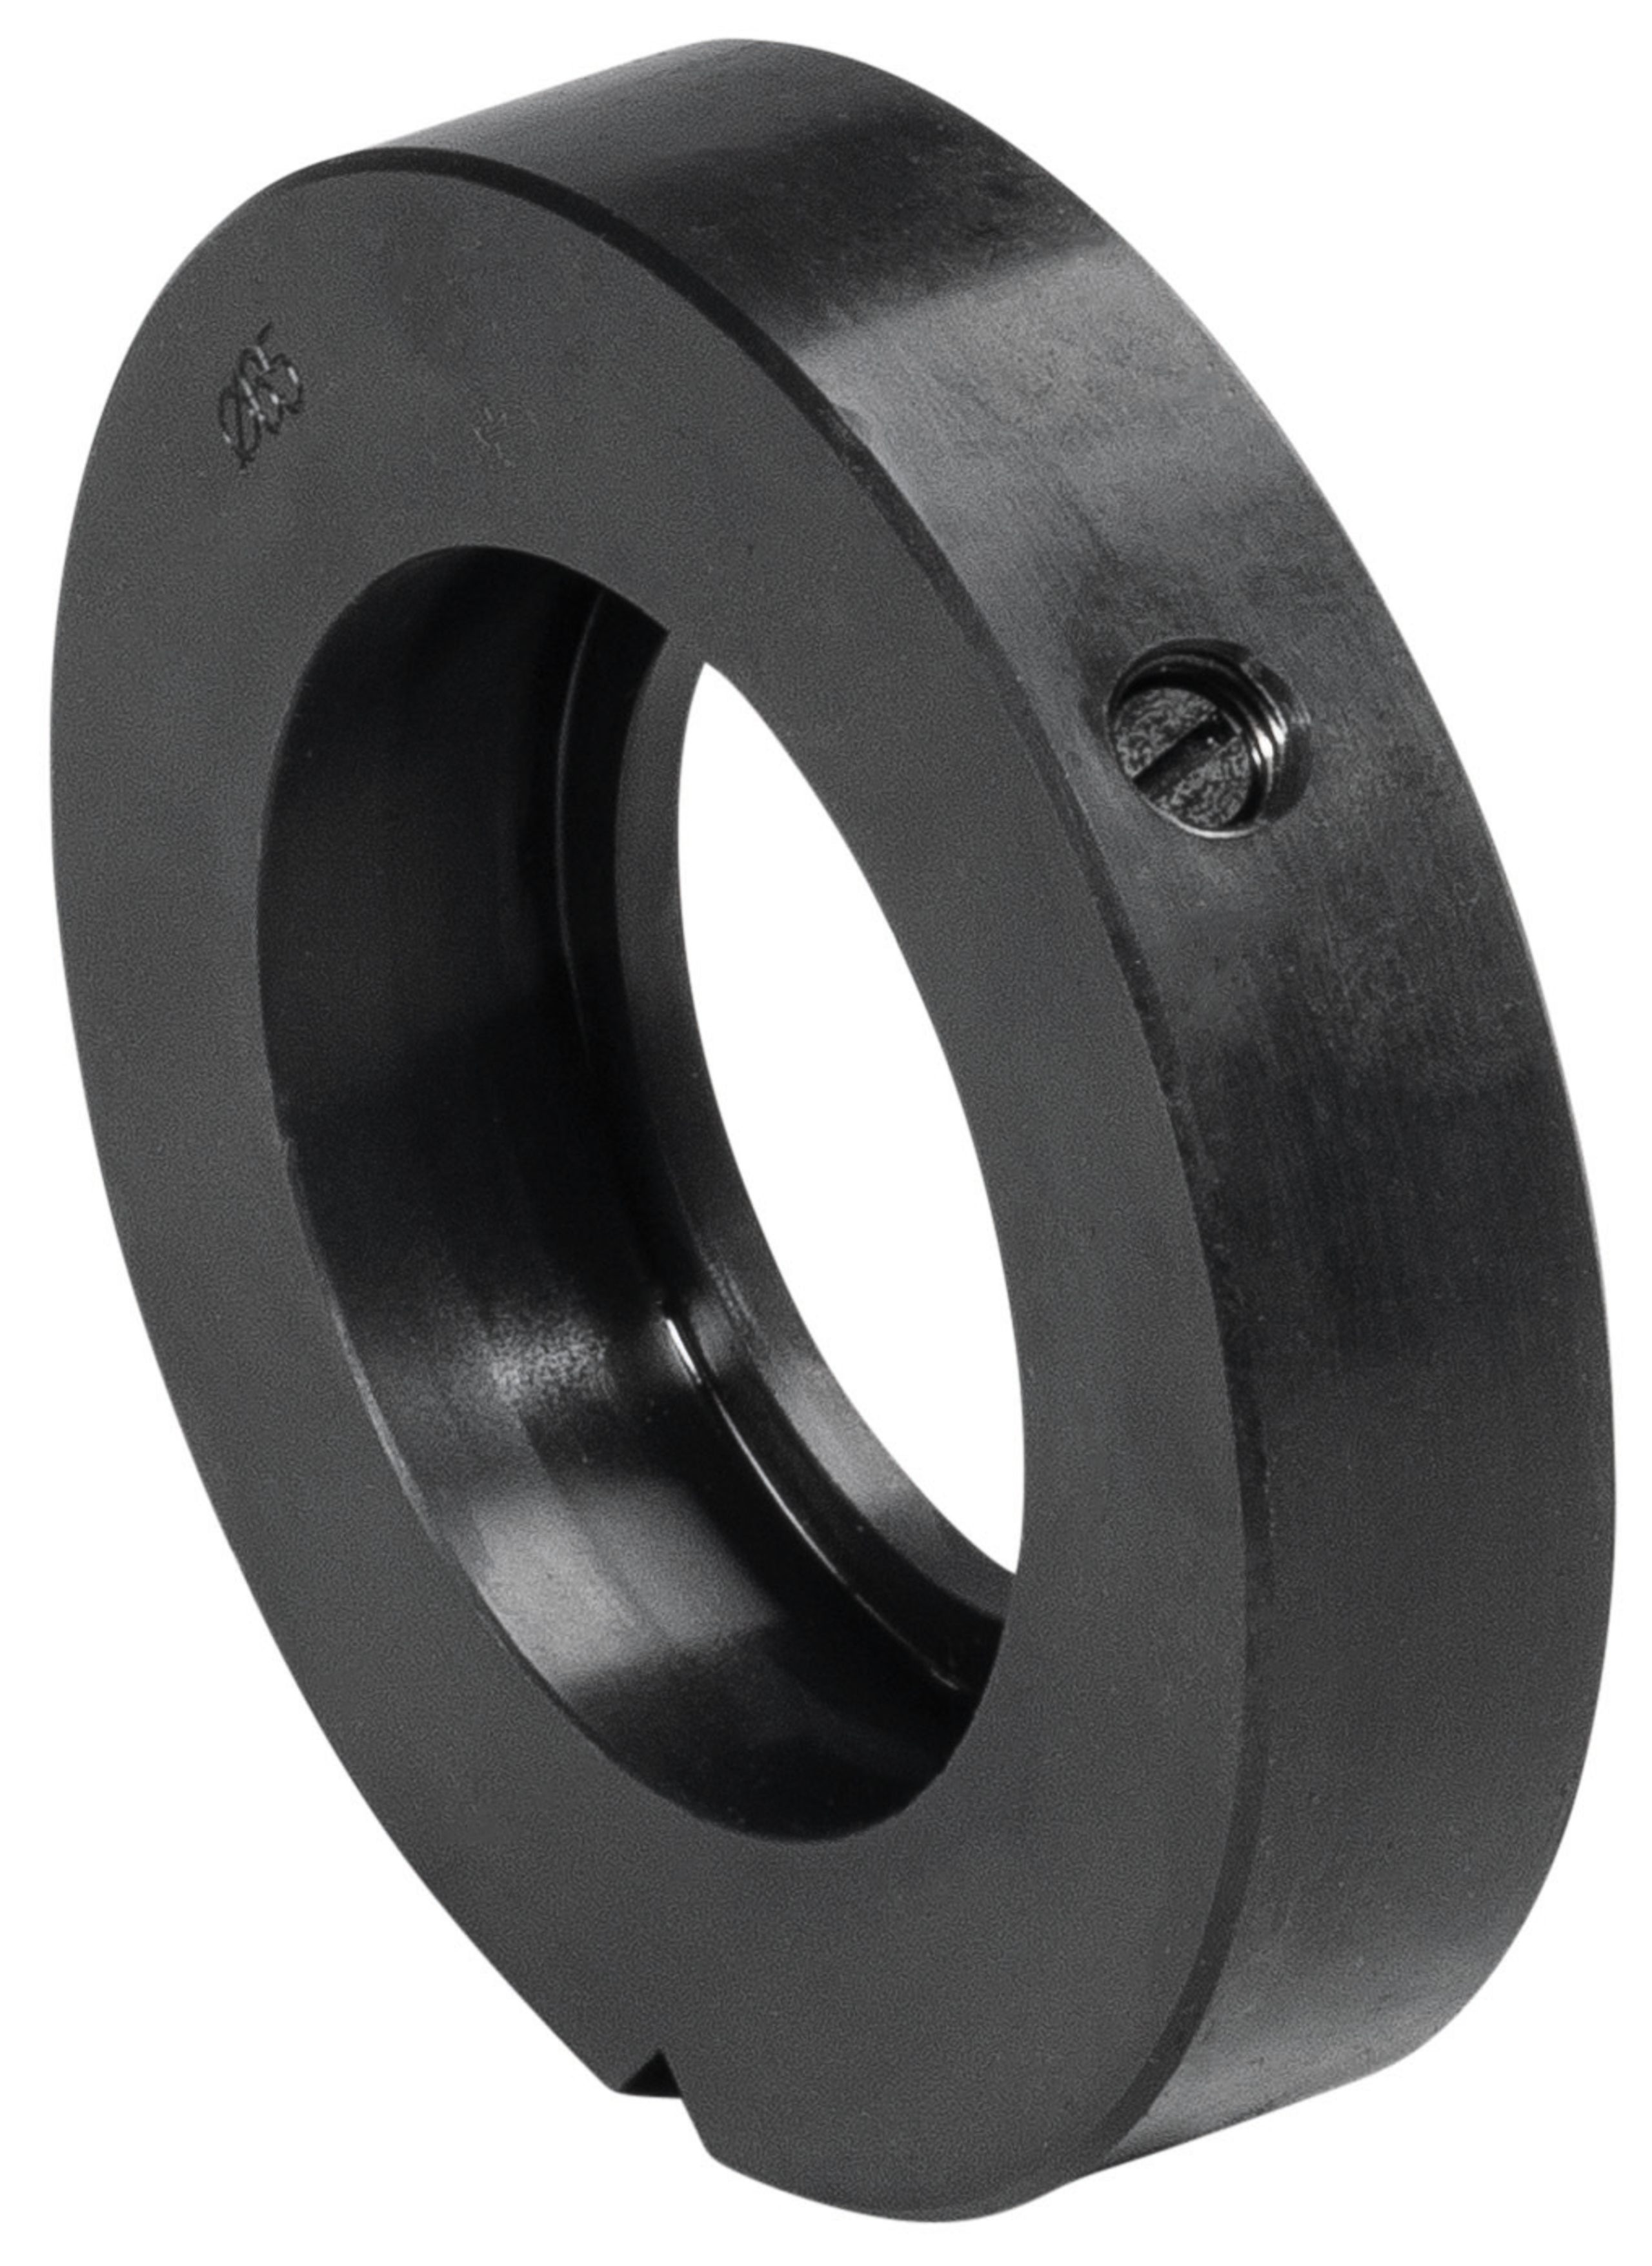 <br/>Intermediate ring Dm 65/105